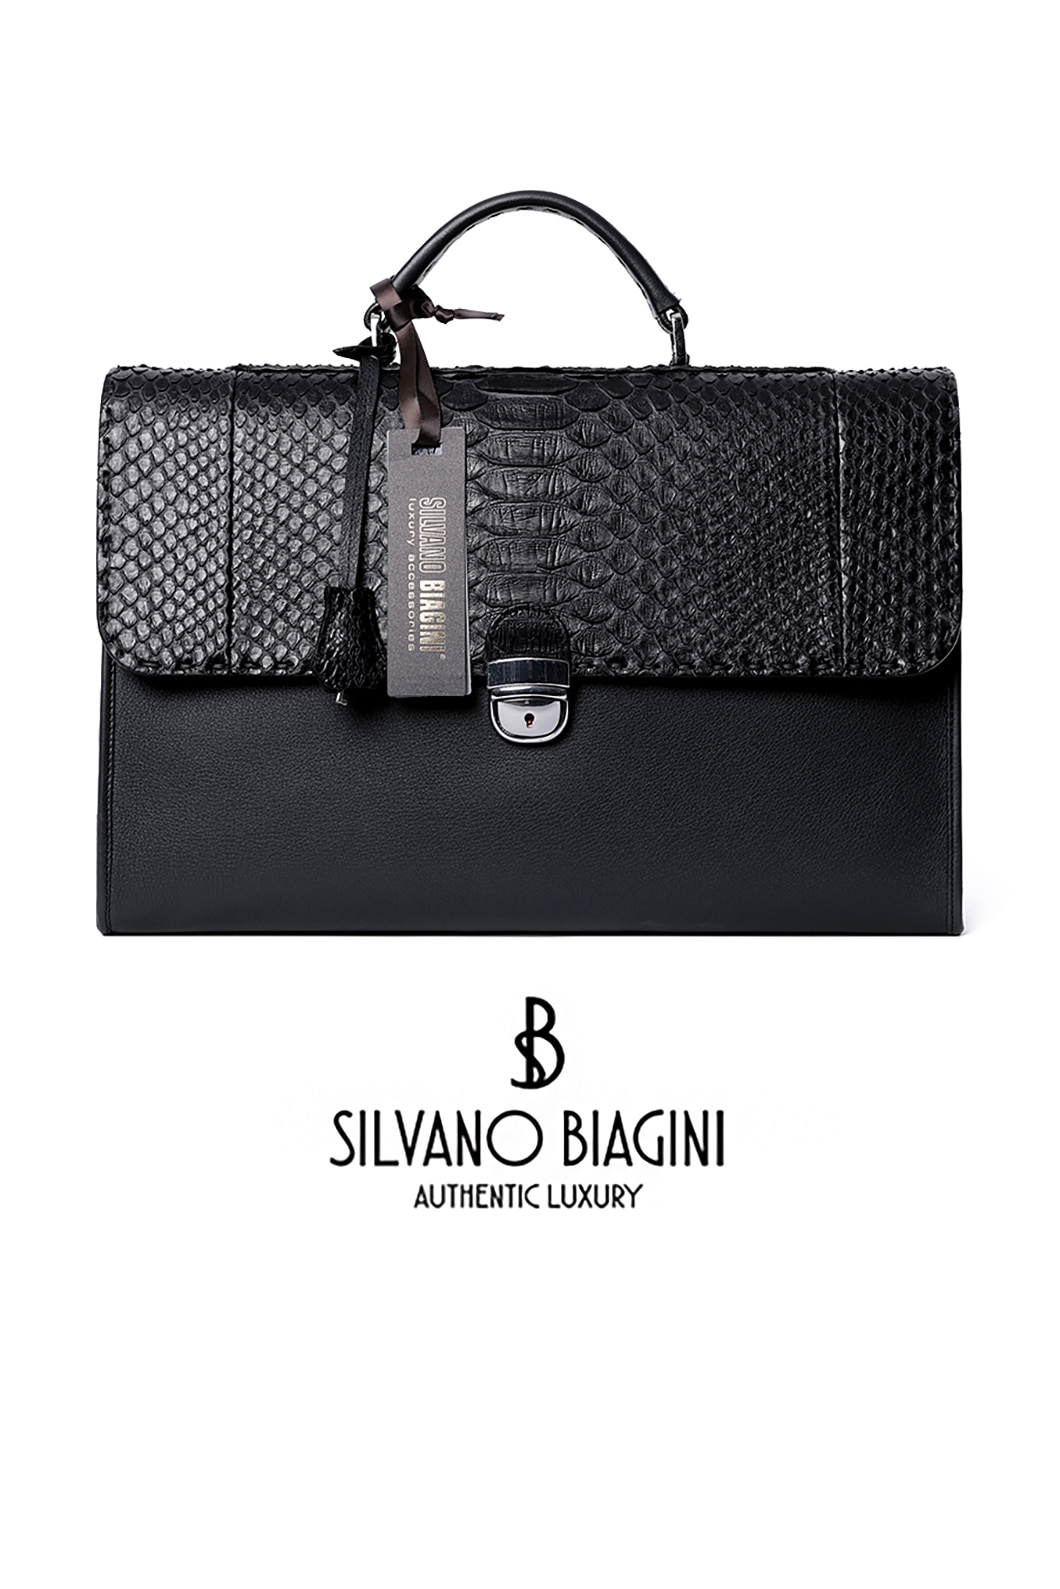 SILVANO BIAGINI PHAETHON BRIEF CASE-BLACKSPECIAL ORDER-MADE IN ITALY